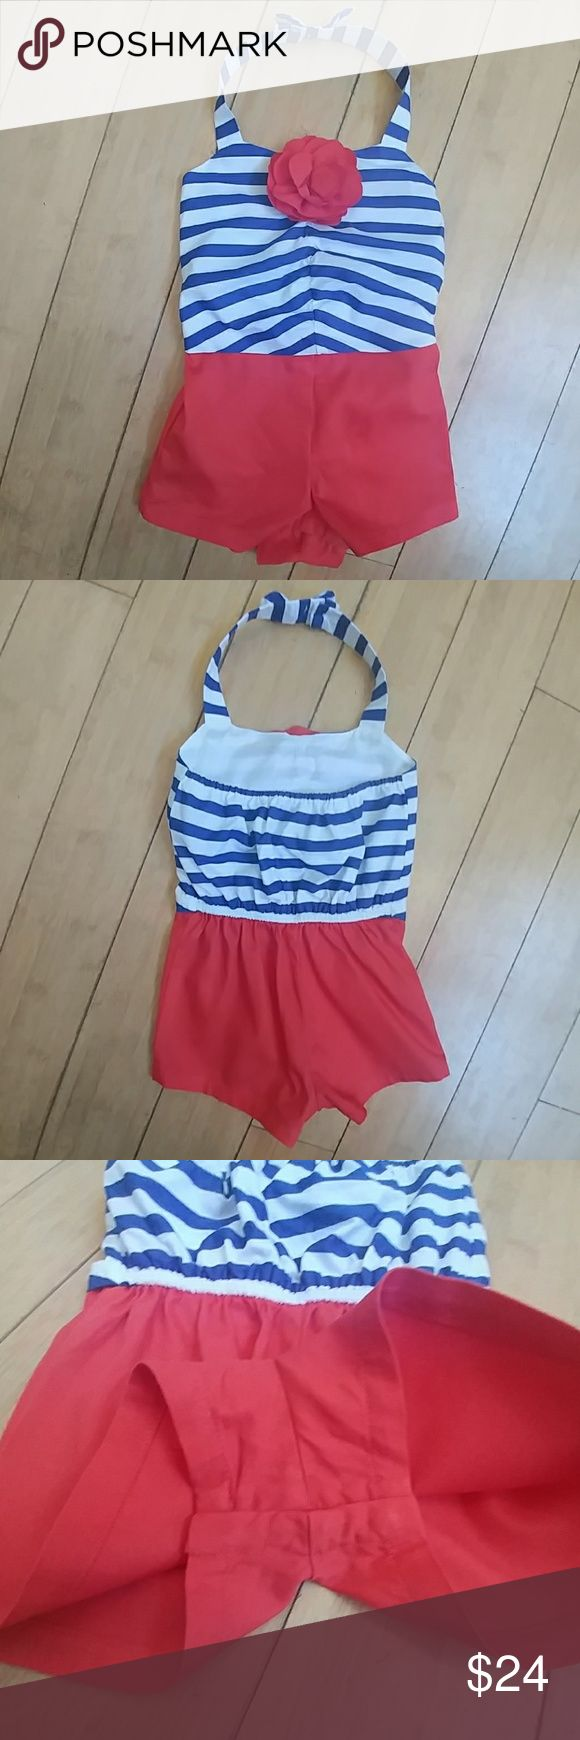 Janie and Jack red, white, & blue stylish romper Like new, used 2 times. Nautical romper with blue, & white striped top, top off with a red flower in center. Red shorts; . Halter neck with cute bow accent, & one button fasten. Bottom of romper has 4 snaps to change the baby easier. Ready for the beach, add sunglasses & flip flops. Janie and Jack One Pieces